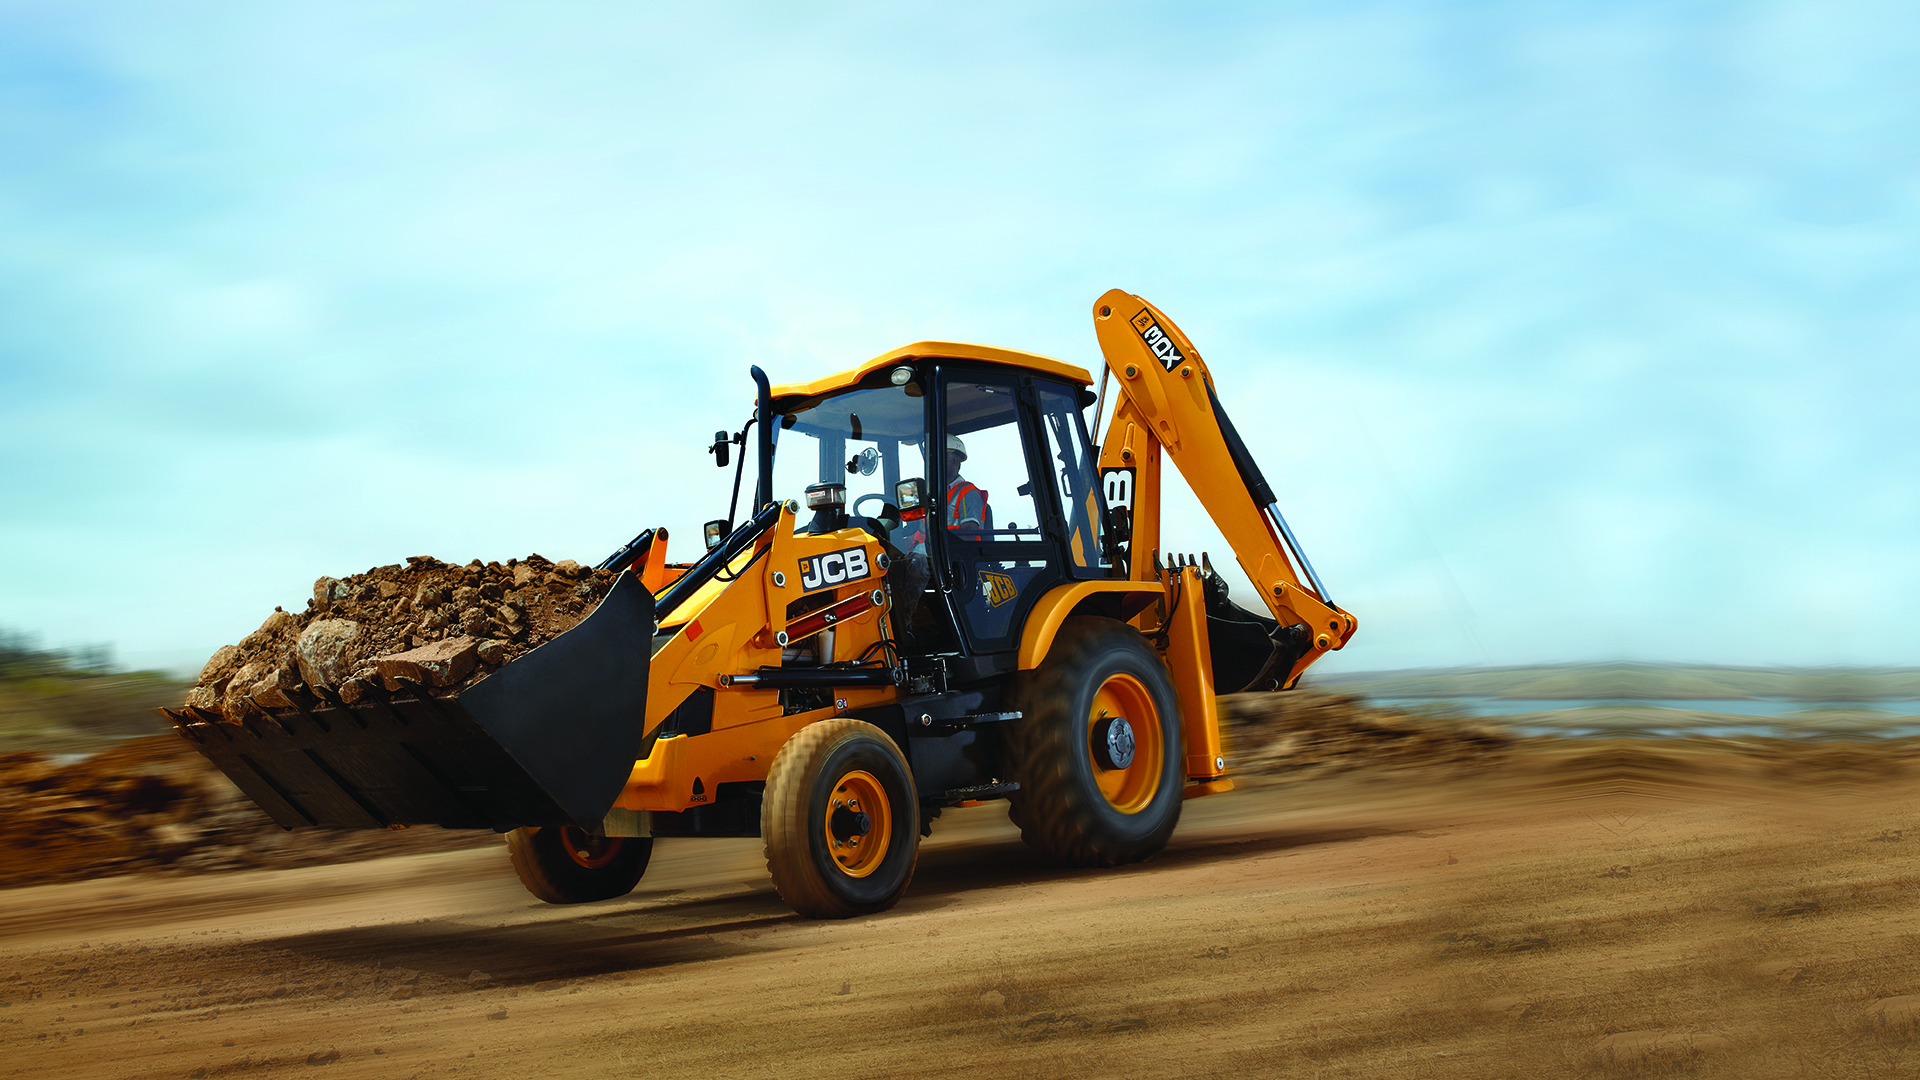 JCB Backhoe Loader 3DX Images